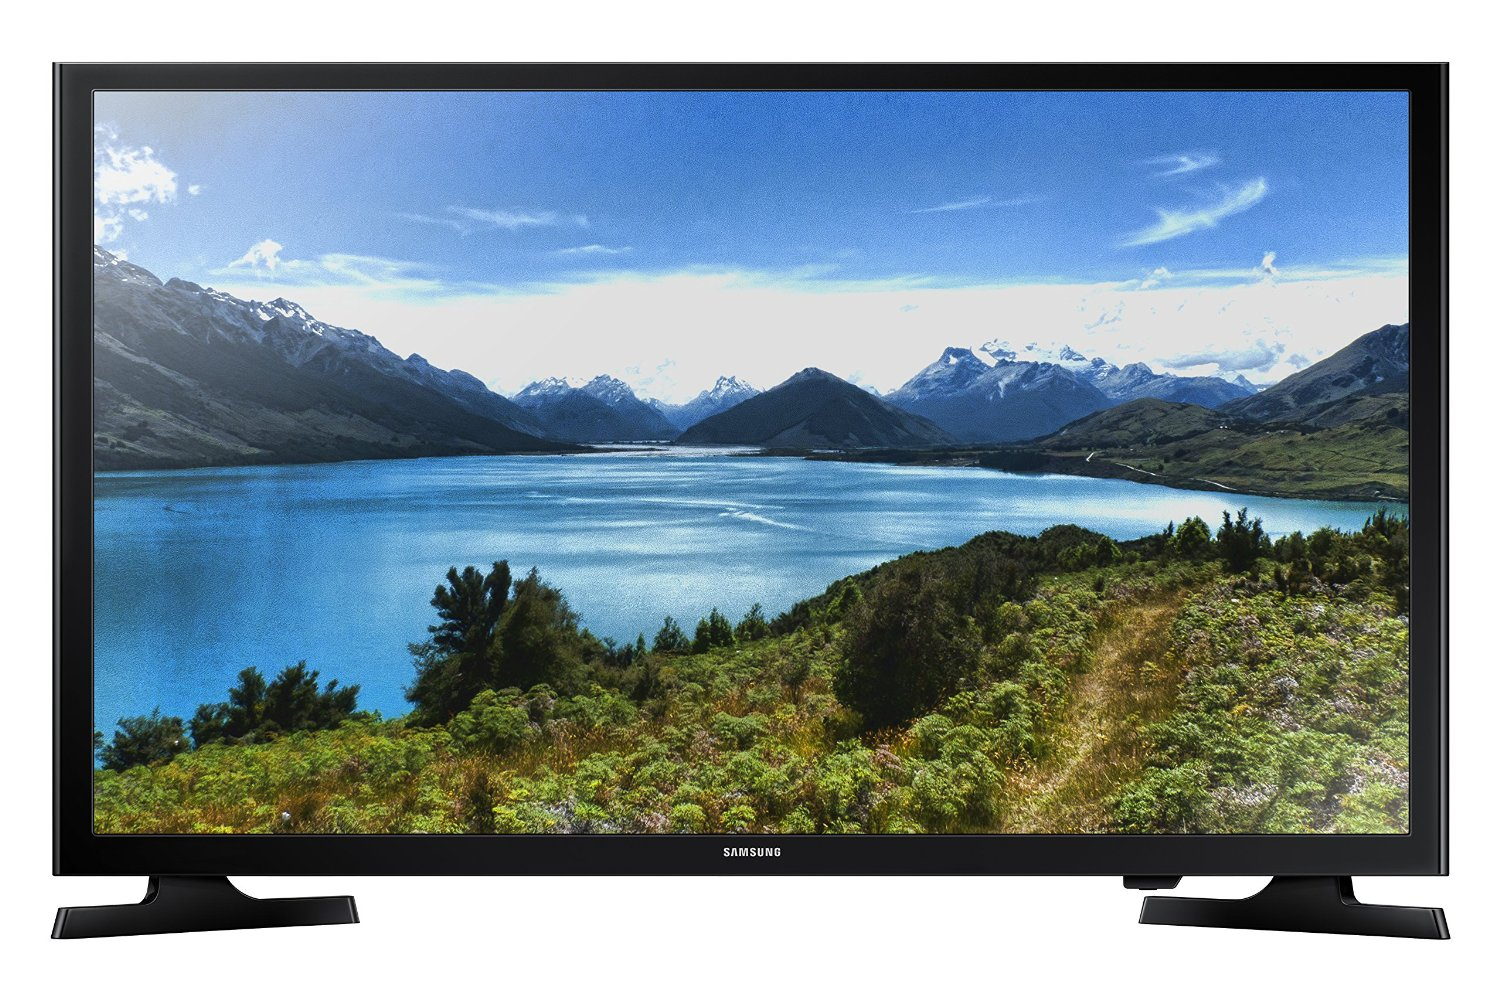 Samsung 32-Inch LED TV